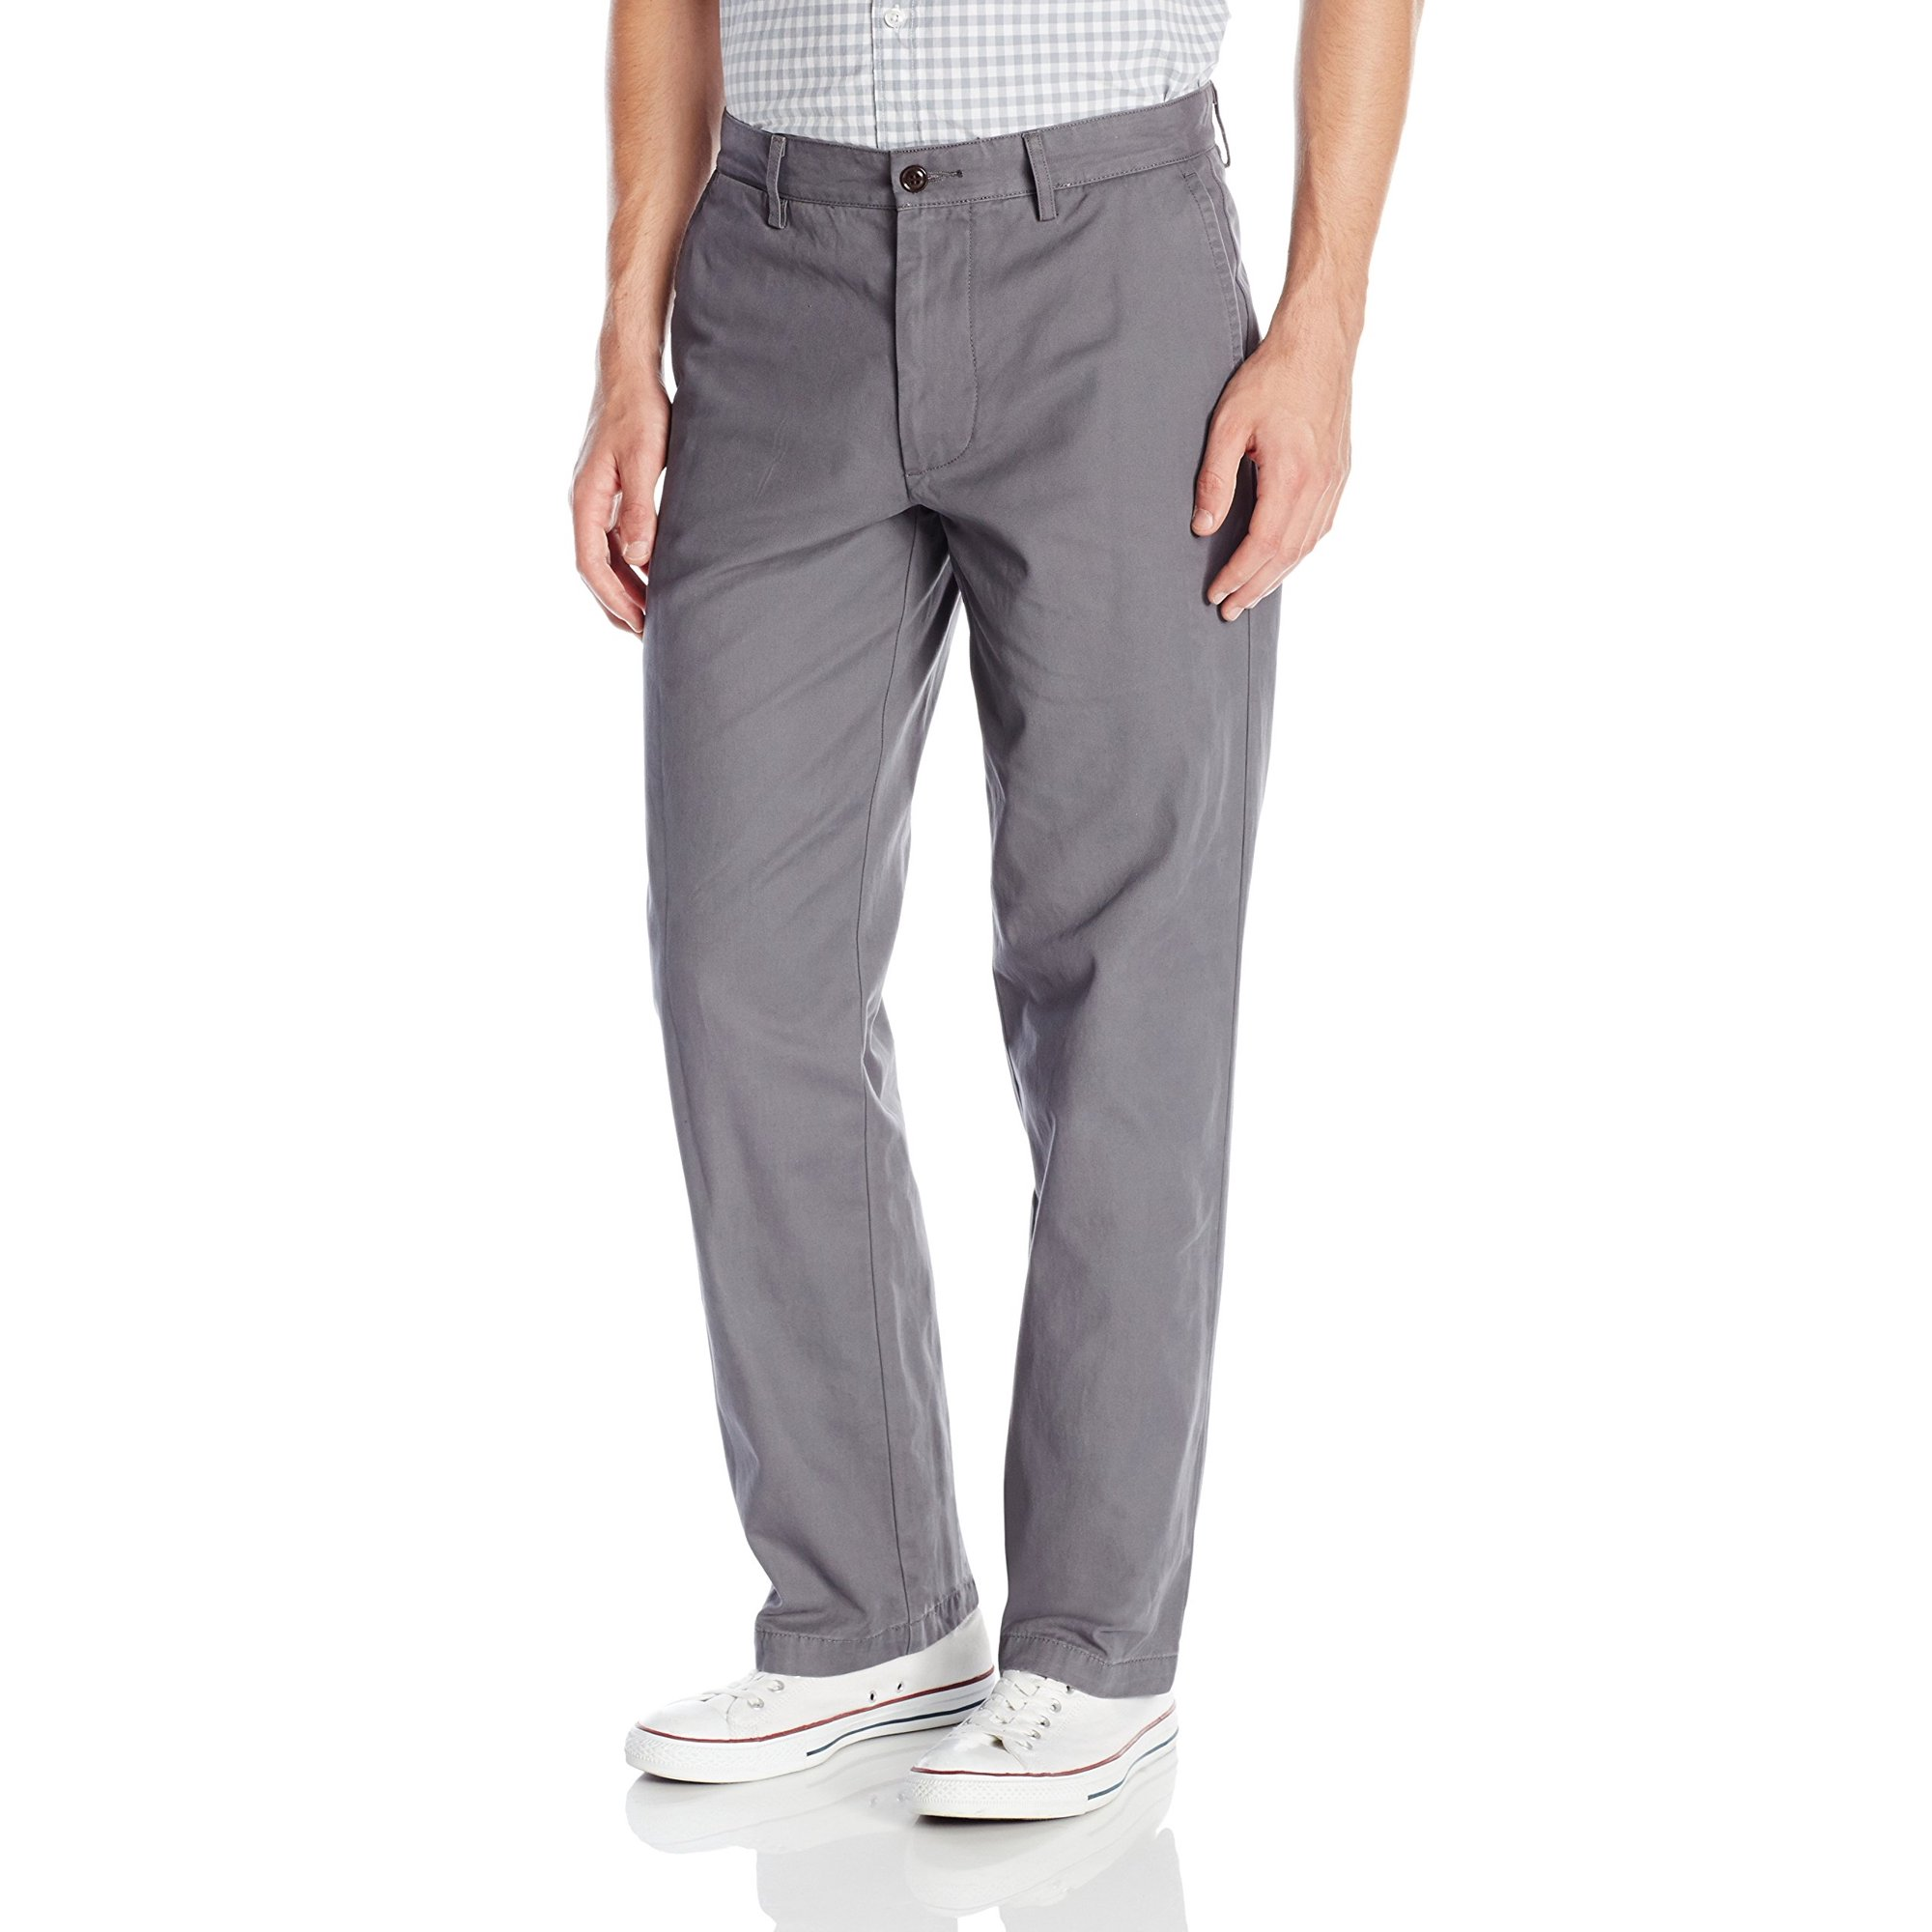 c64b2f8235 Dockers NEW Solid Gray Mens Size 38X29 Straight Fit Khakis Chinos Pants